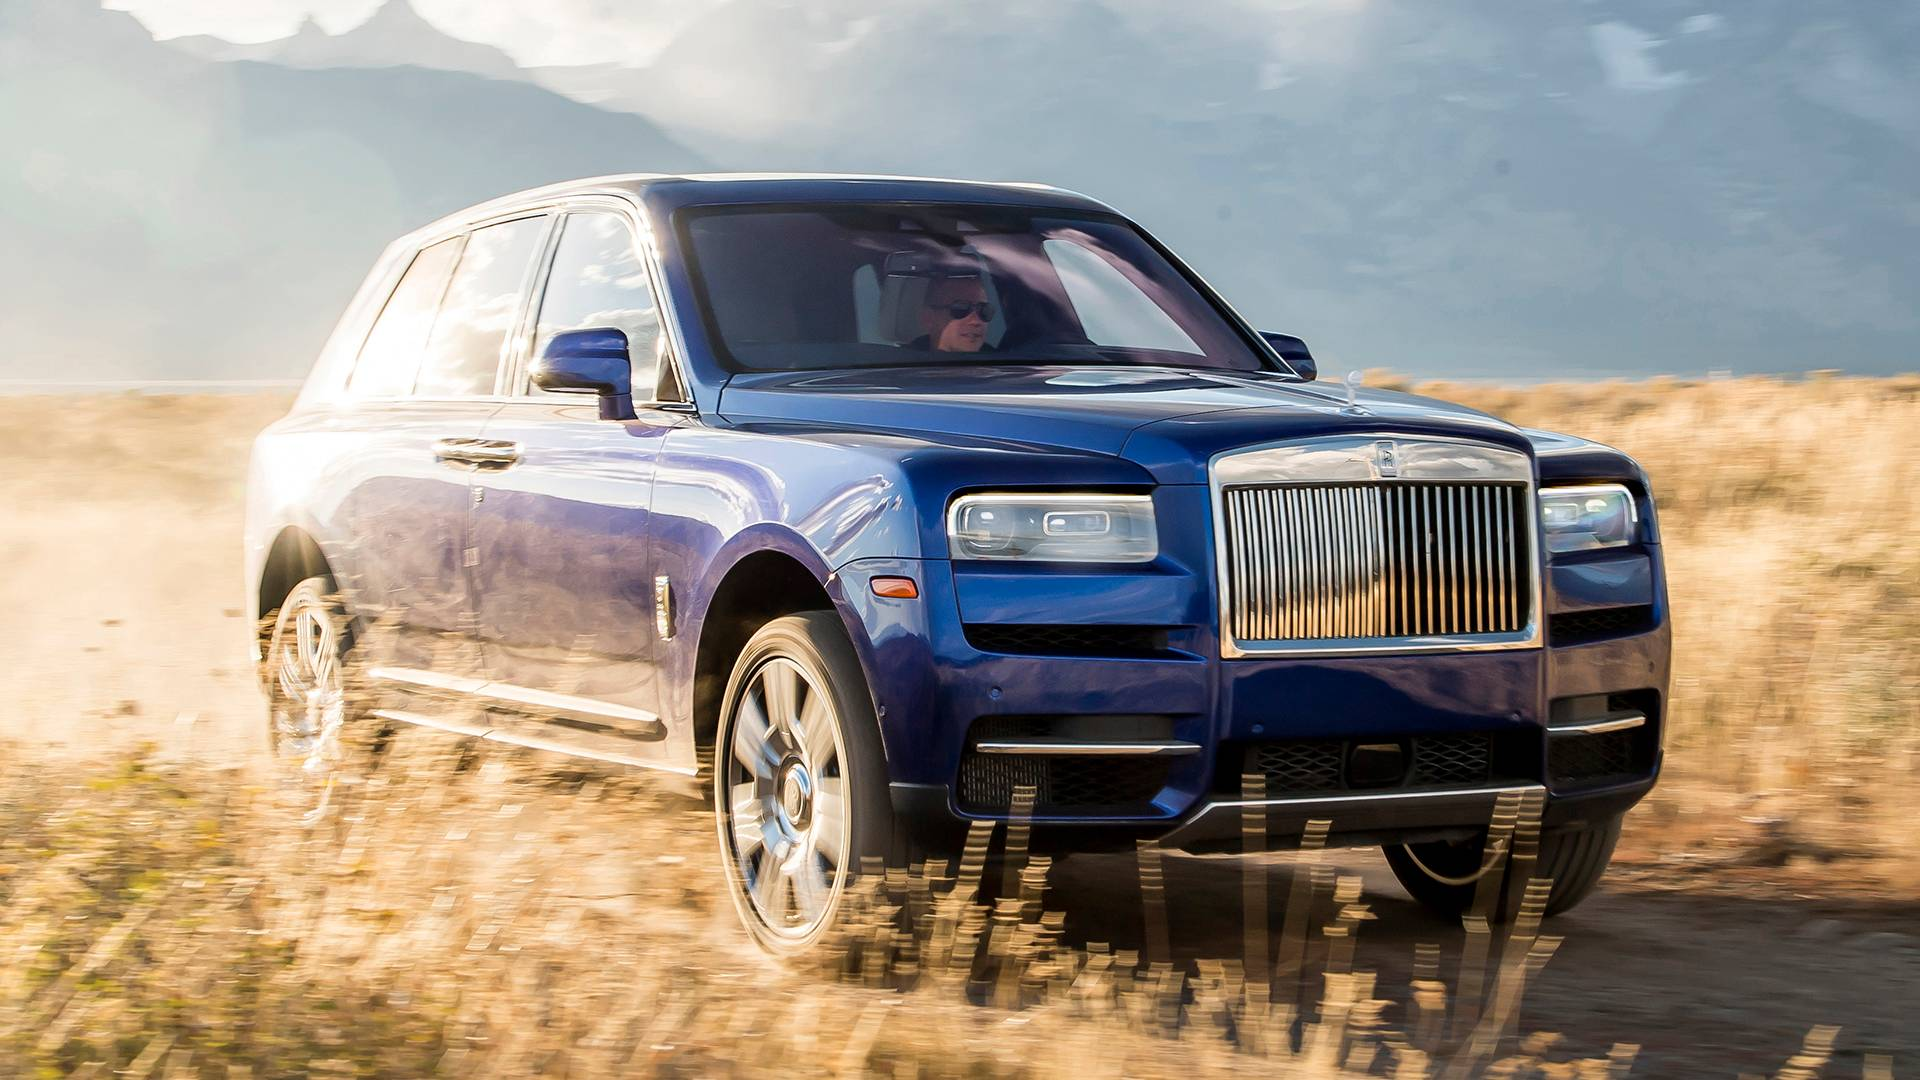 2019 Rolls Royce Cullinan: Design, Powertrain, Release >> 2019 Rolls Royce Cullinan First Drive Getting Mud In The Grey Poupon